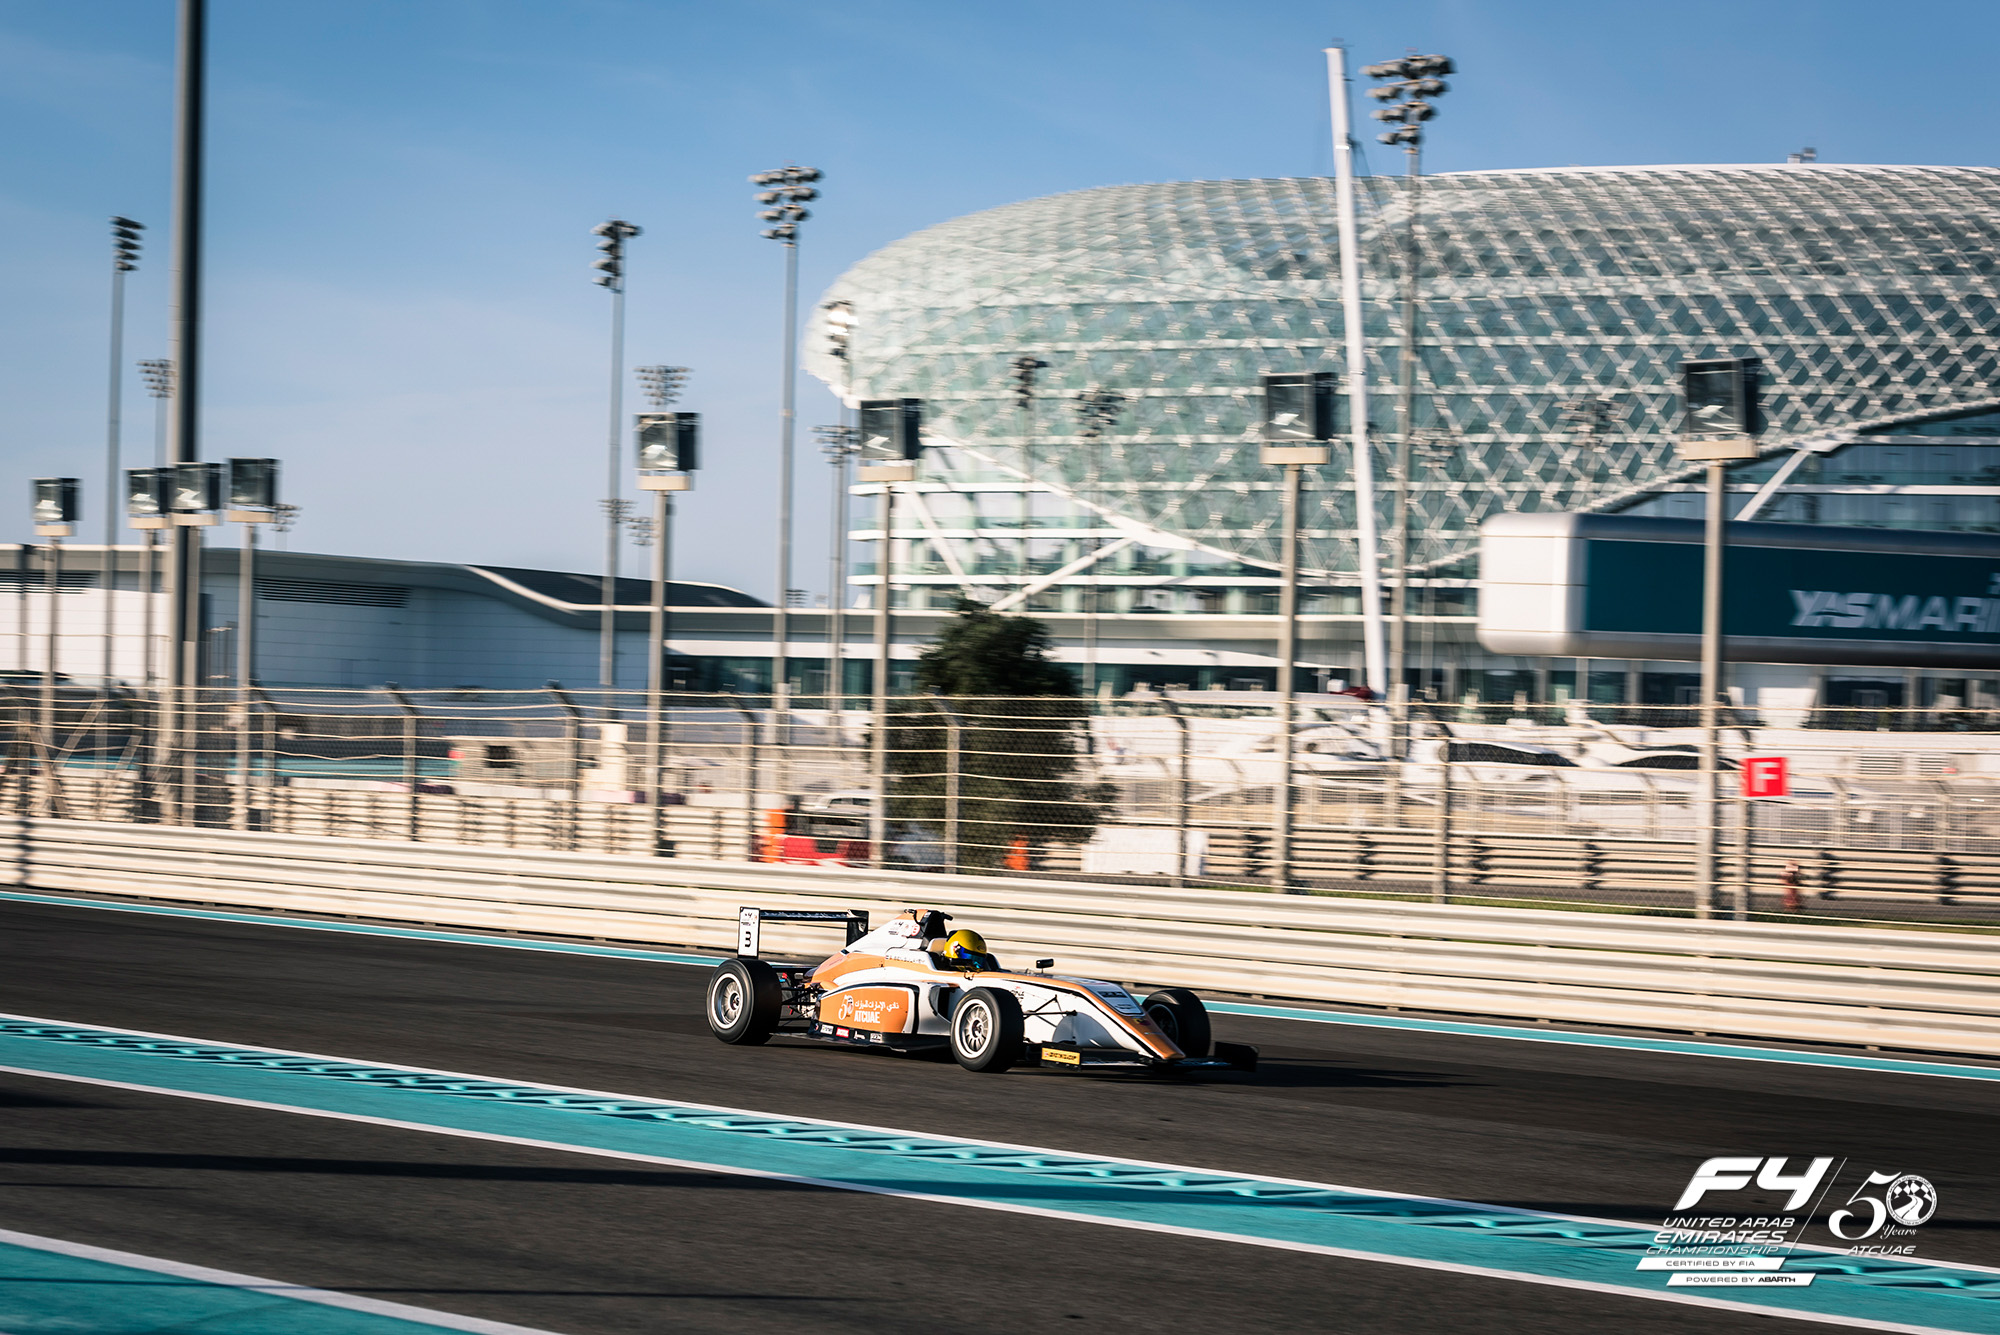 2016 12 18   F4 Second Roud   Abu Dhabi 11 Of 39